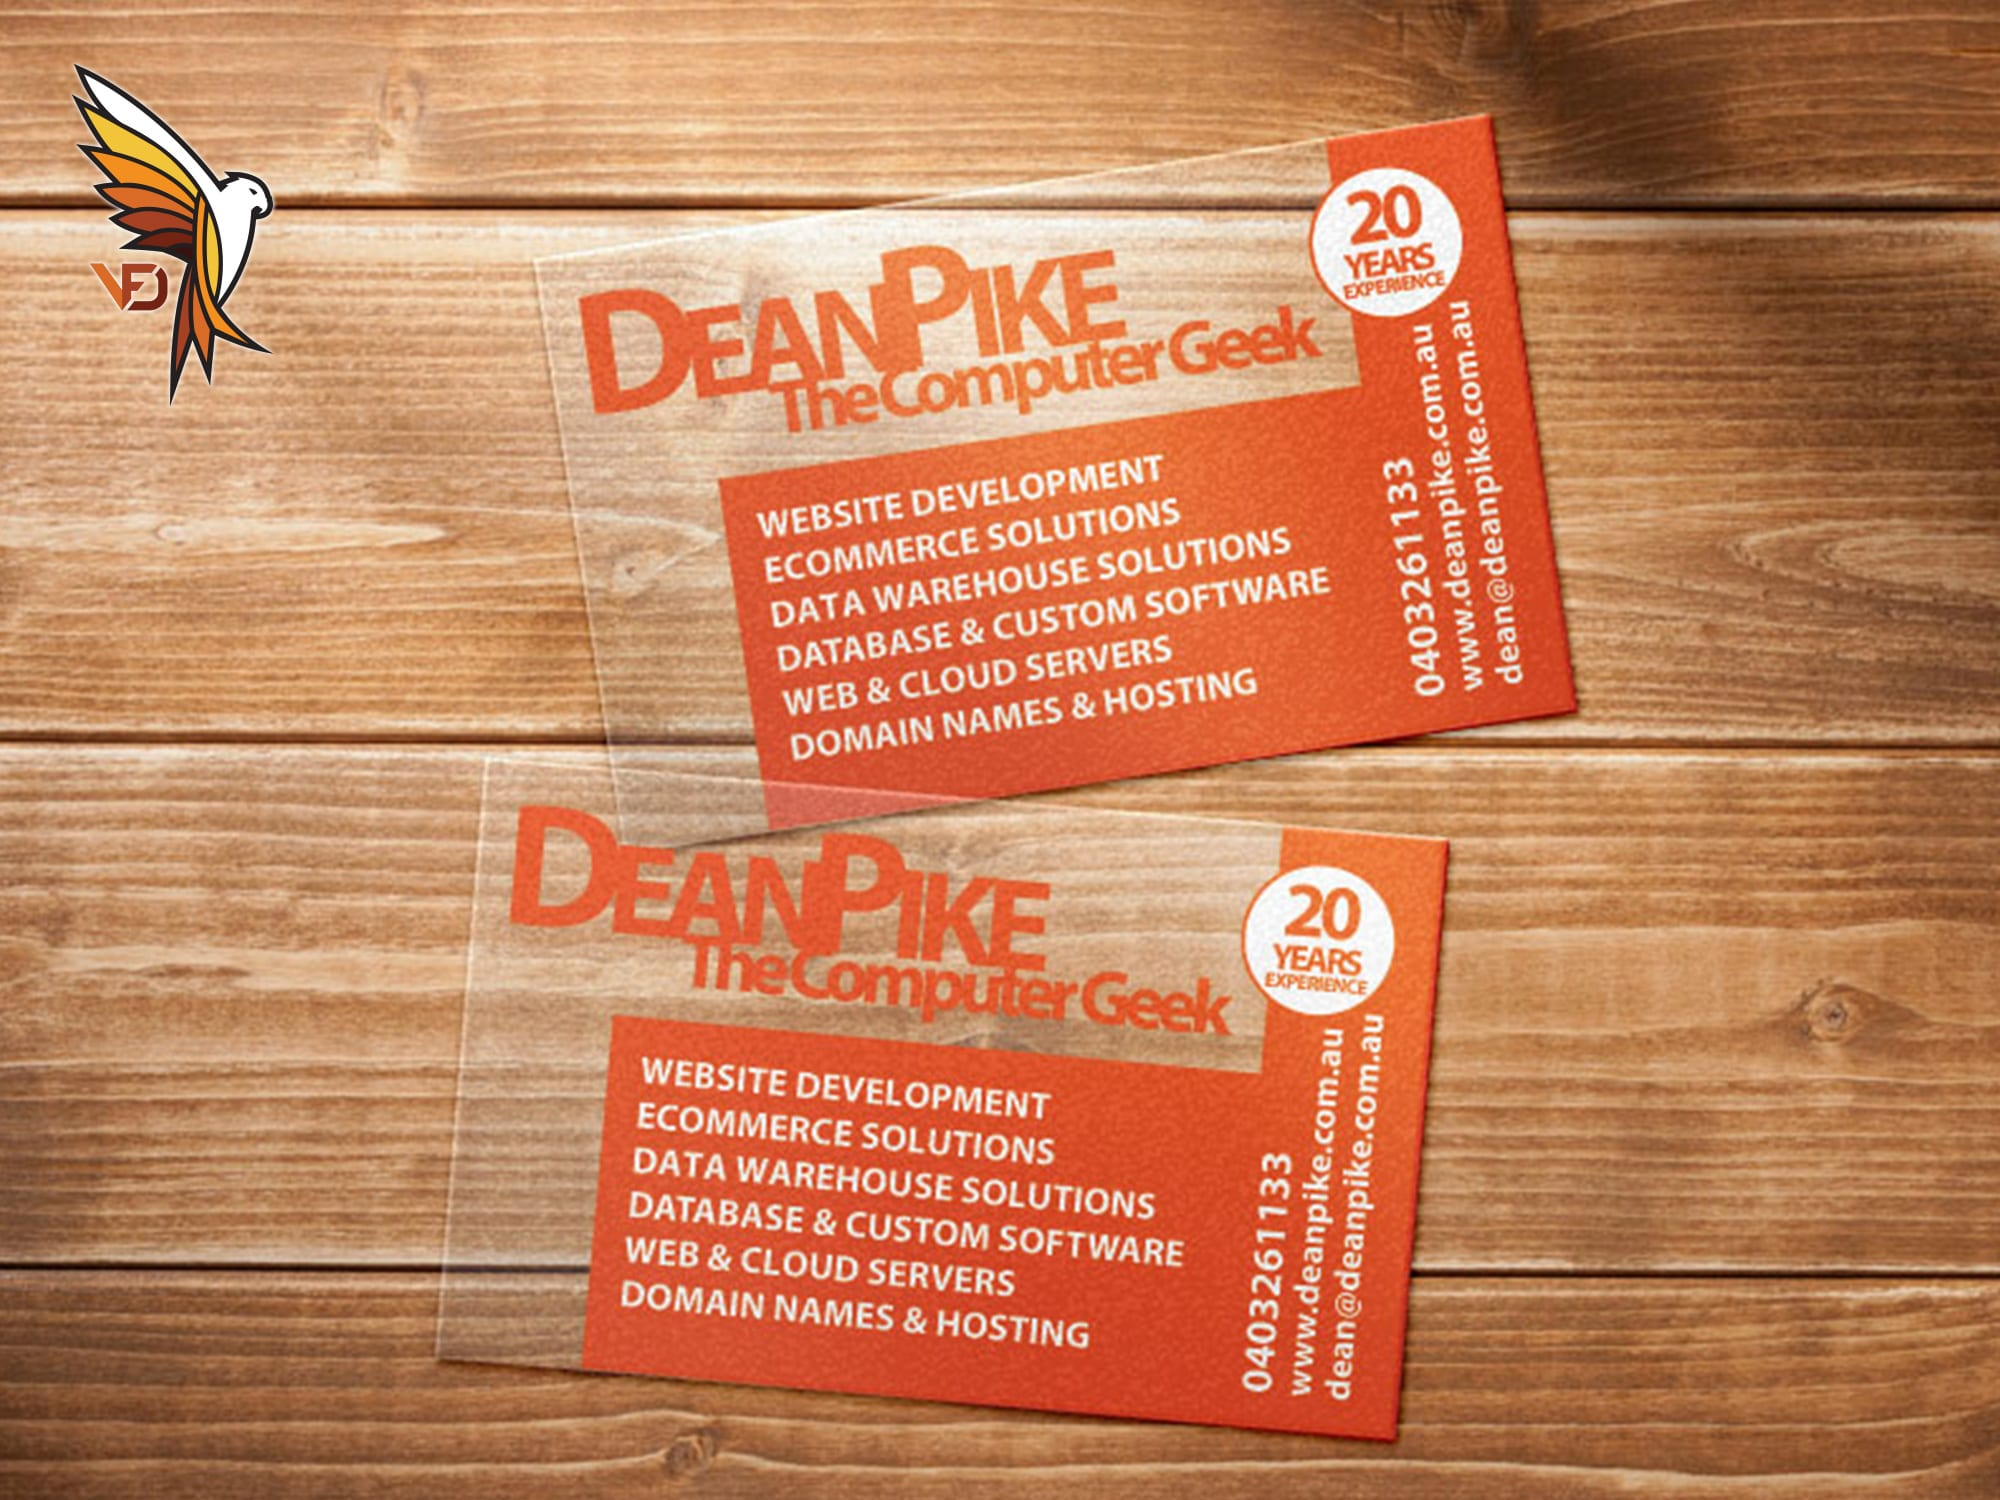 Dean Pike Computer Geek - Business Card